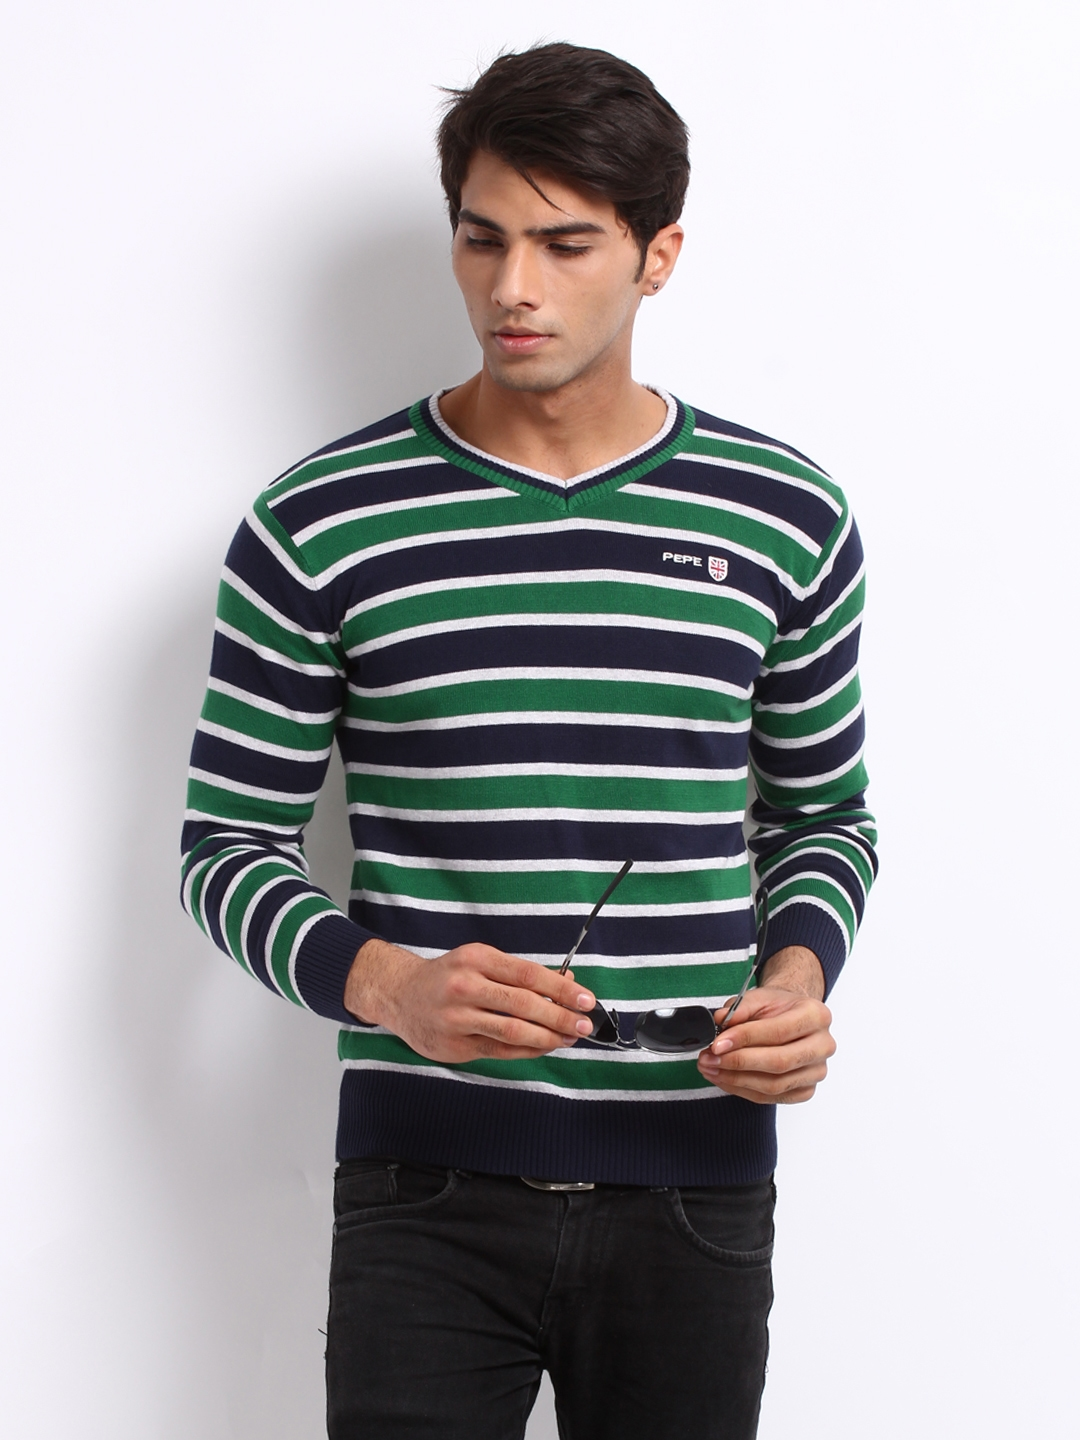 buy pepe jeans men navy green striped sweater sweaters. Black Bedroom Furniture Sets. Home Design Ideas